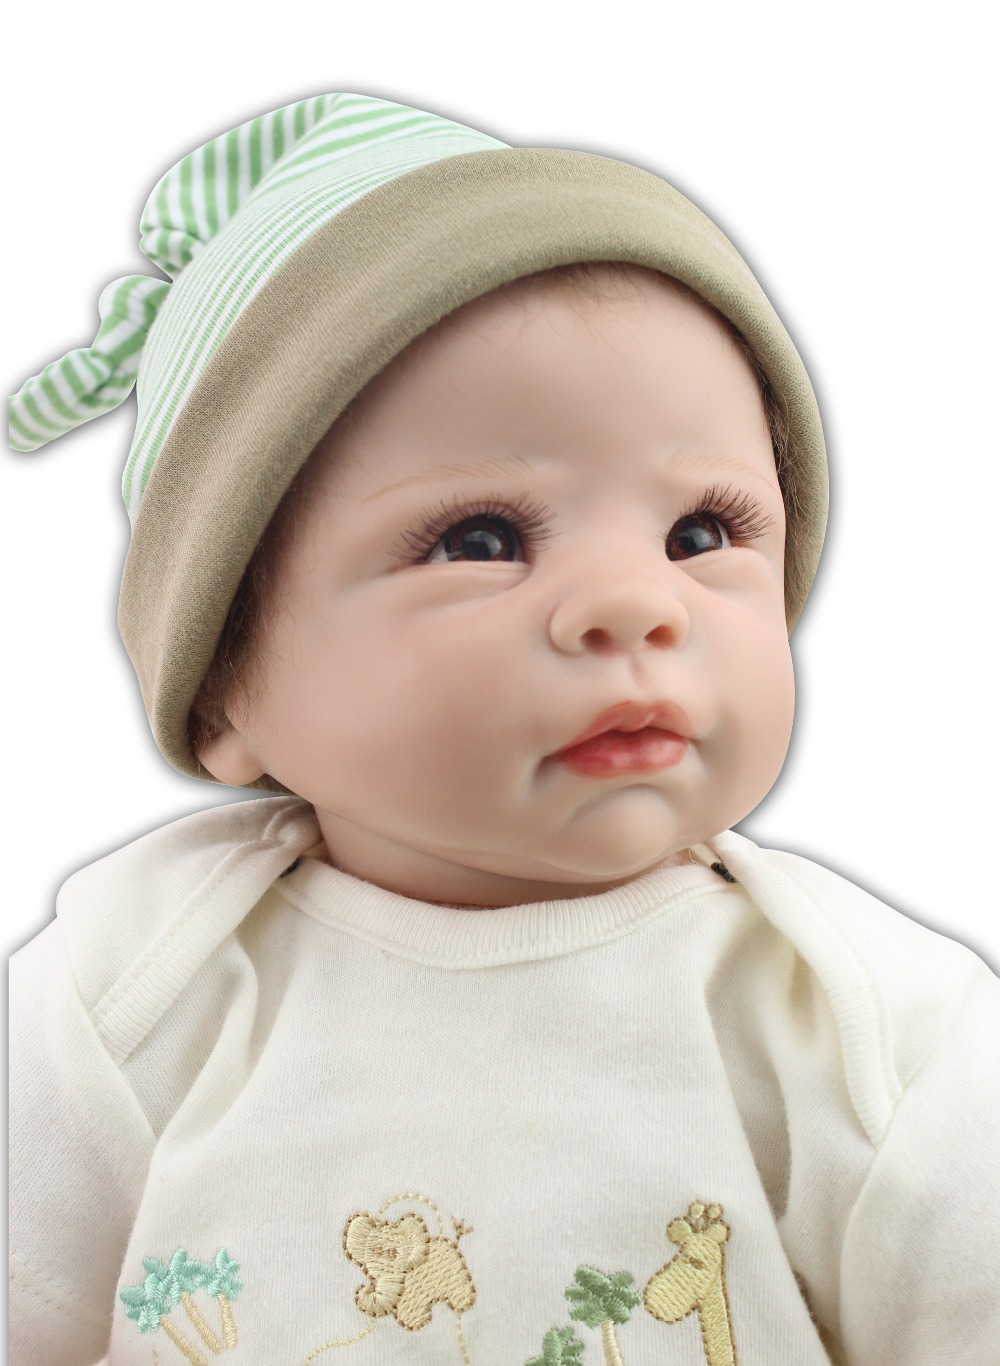 High Quality popular Simulation Babydoll Imported Mohair Doll Silicone Vinyl Toys Soft Cotton Body Children Birthday Present newborn simulation babydoll silicone vinyl doll educational enlightenment baby toys girls present